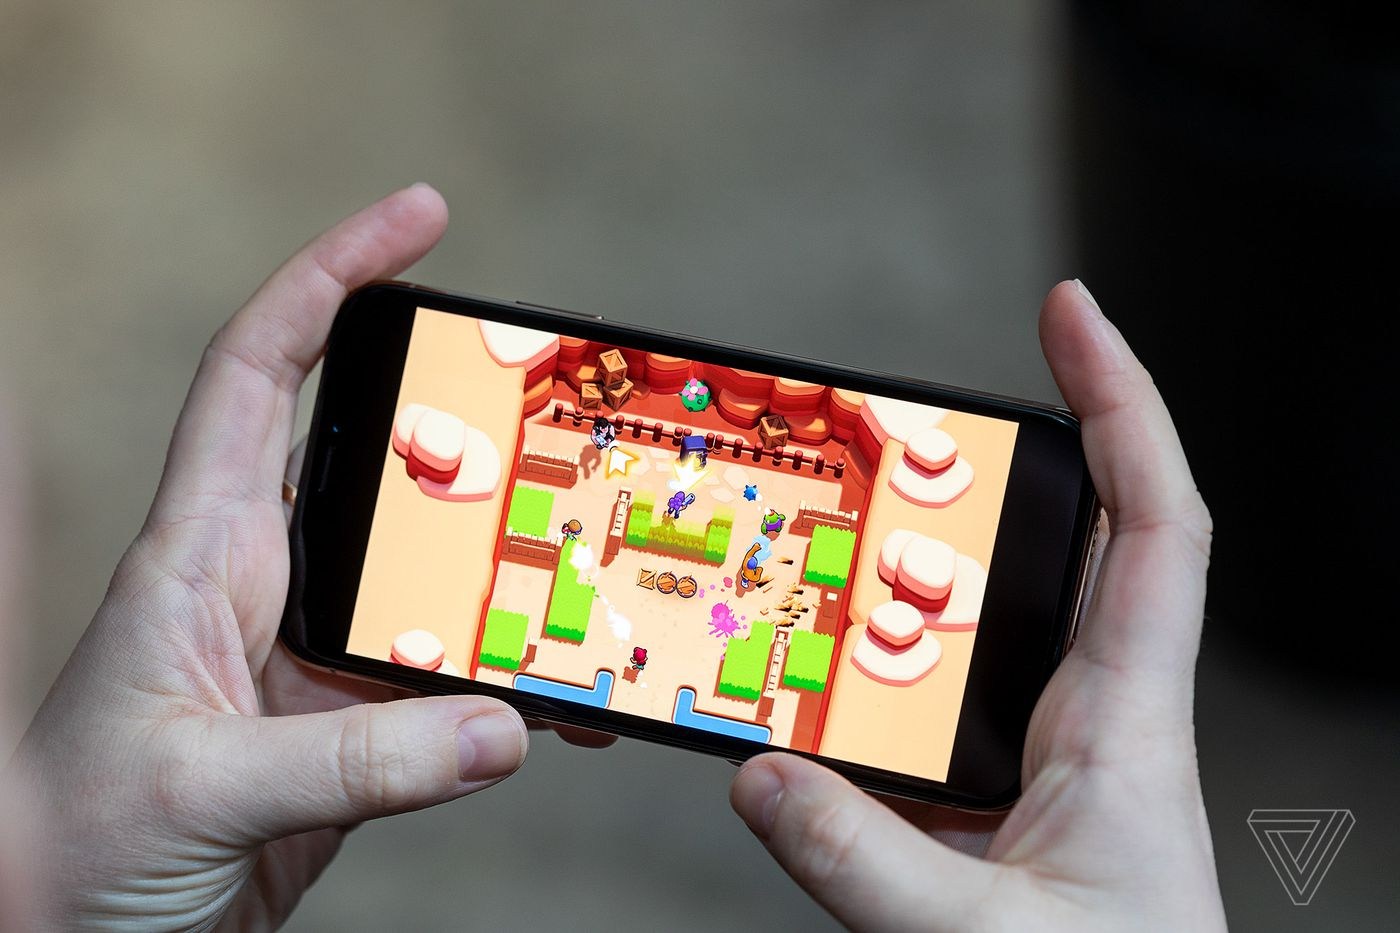 The 8 best games for your new iPhone, iPad, or Android phone - The Verge